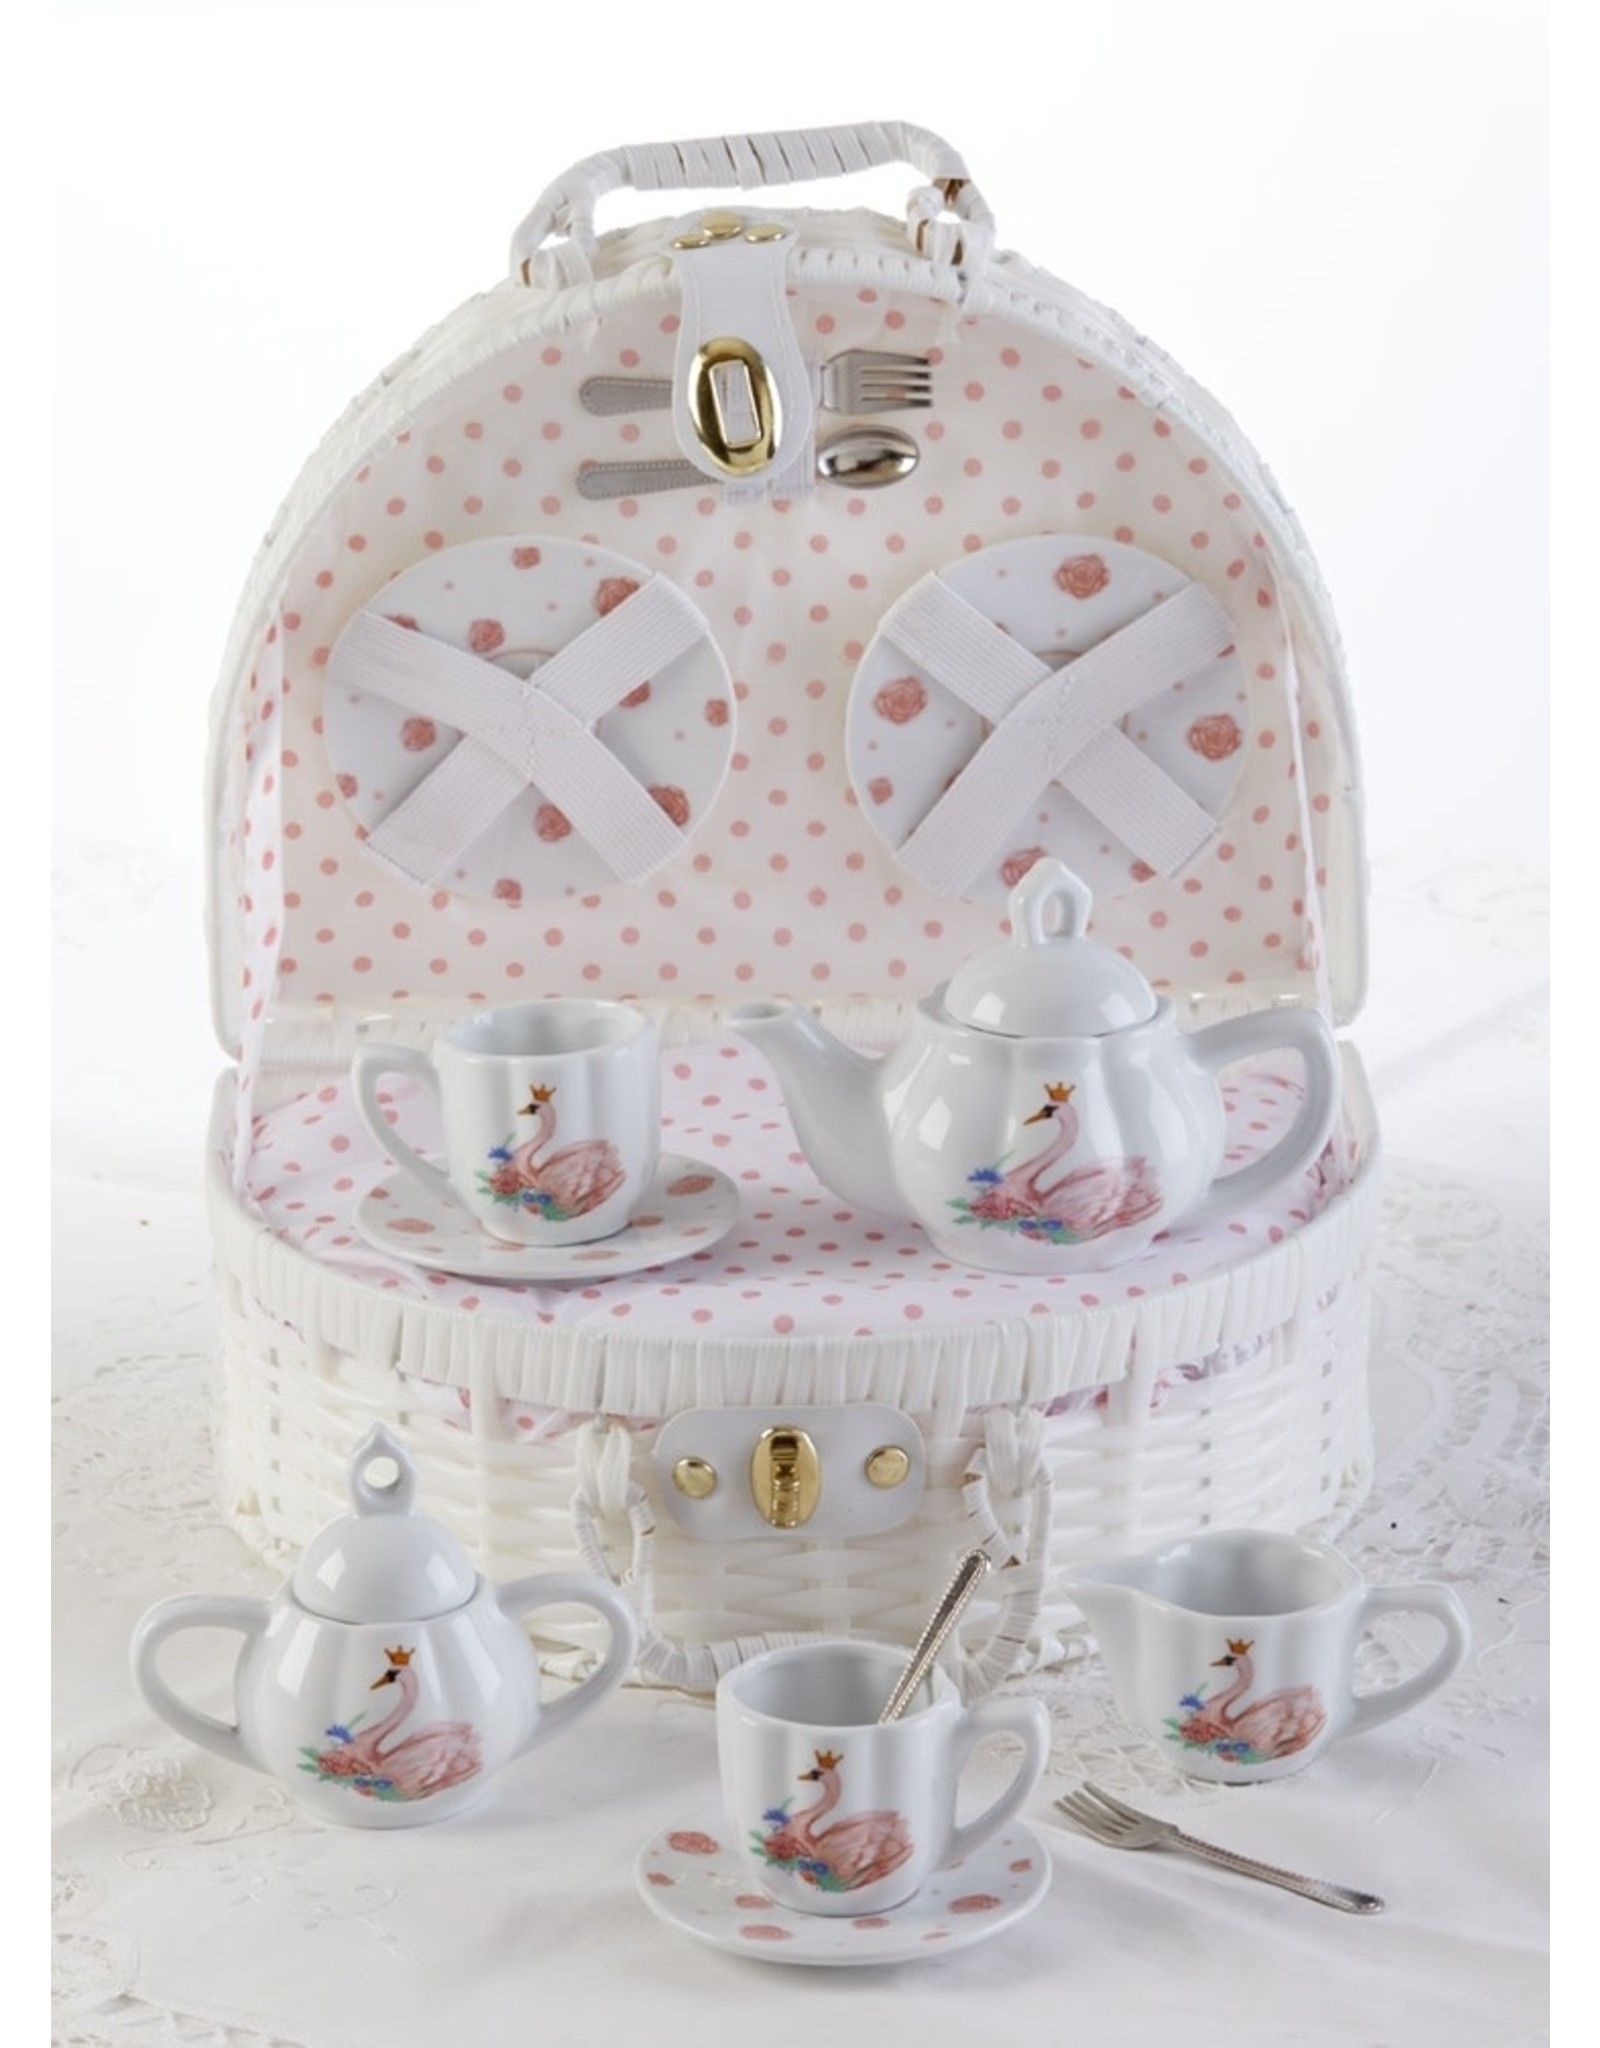 Delton SWAN BASKET PORCELAIN TEA SET